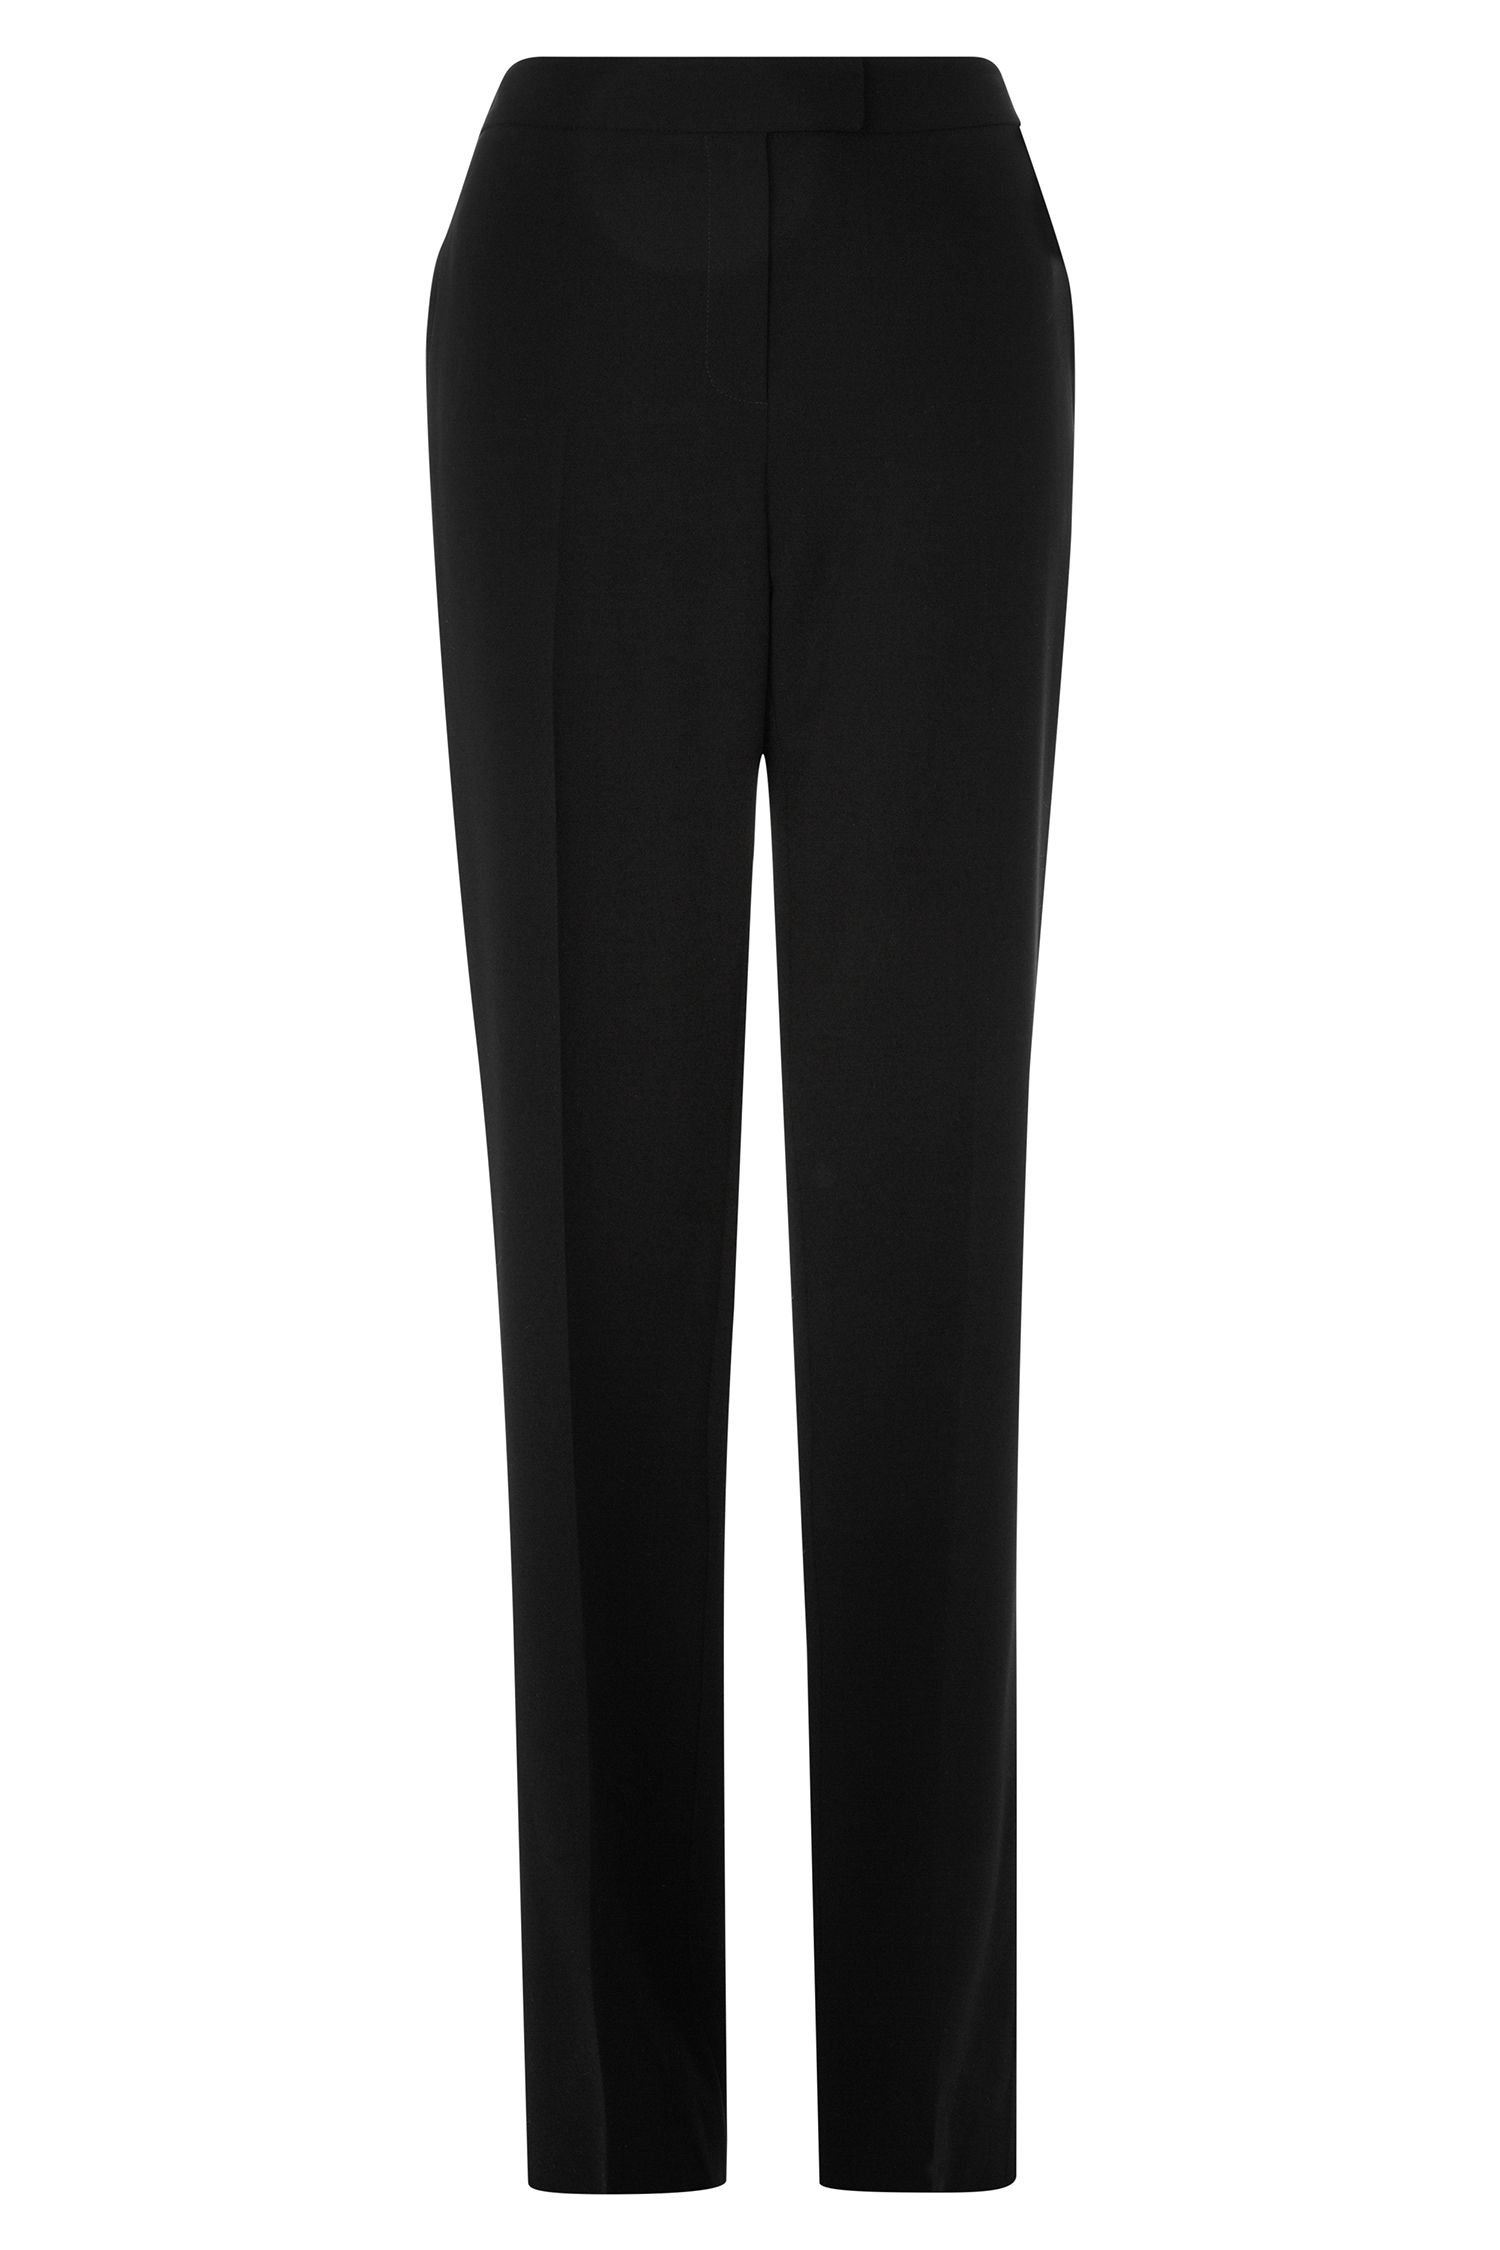 Damsel in a Dress Spotlight Narrow Leg Trouser, Black